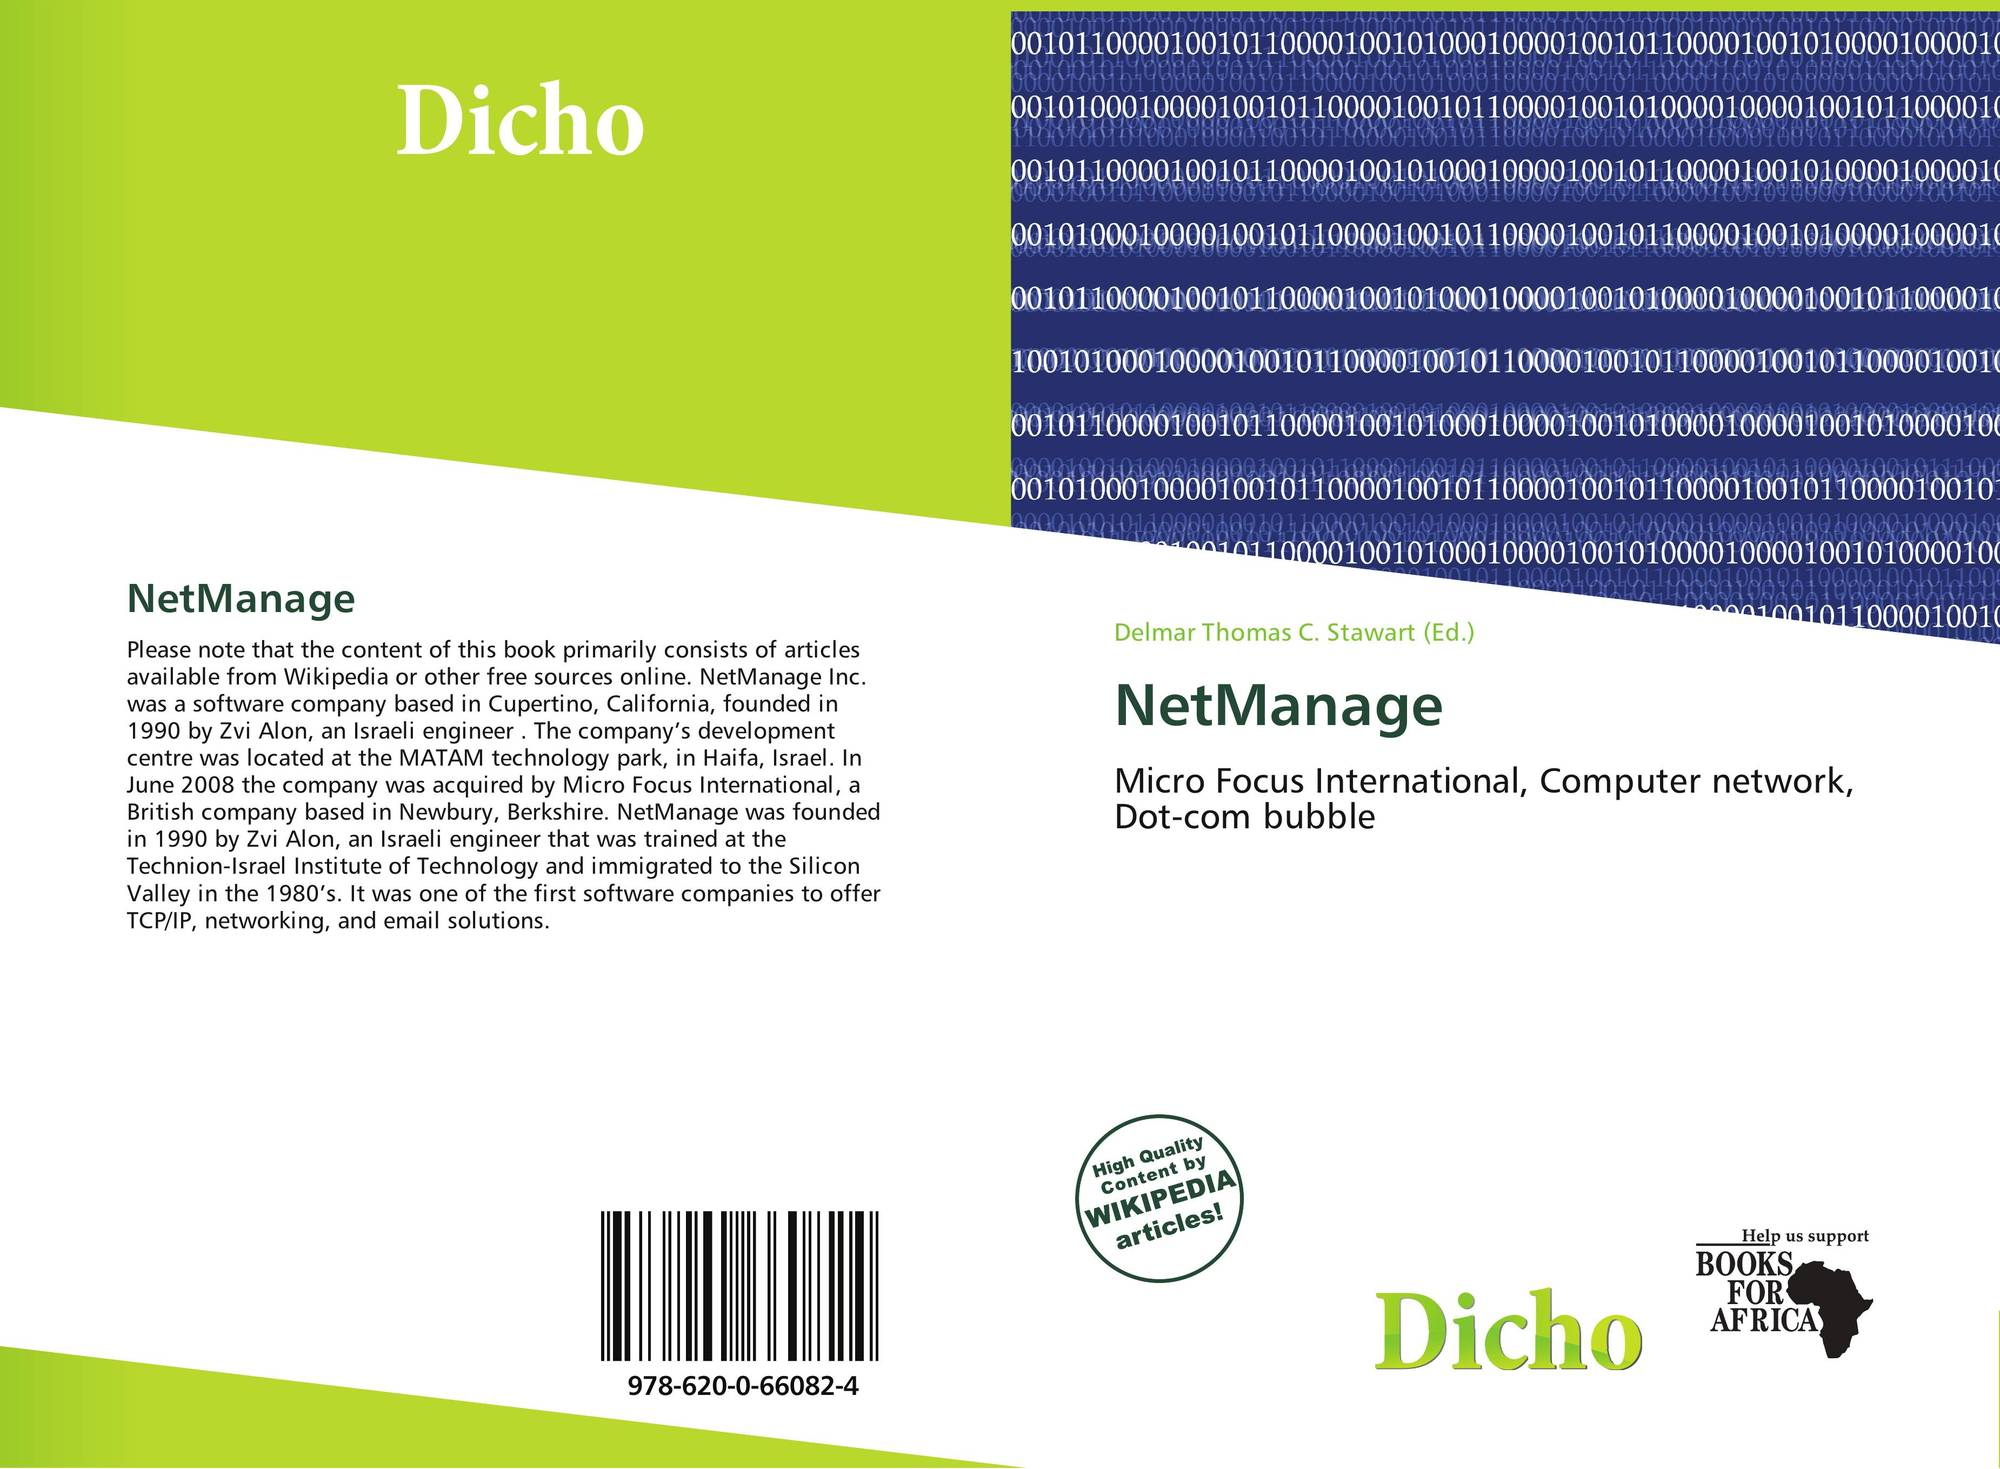 NetManage, 978-620-0-66082-4, 6200660824 ,9786200660824